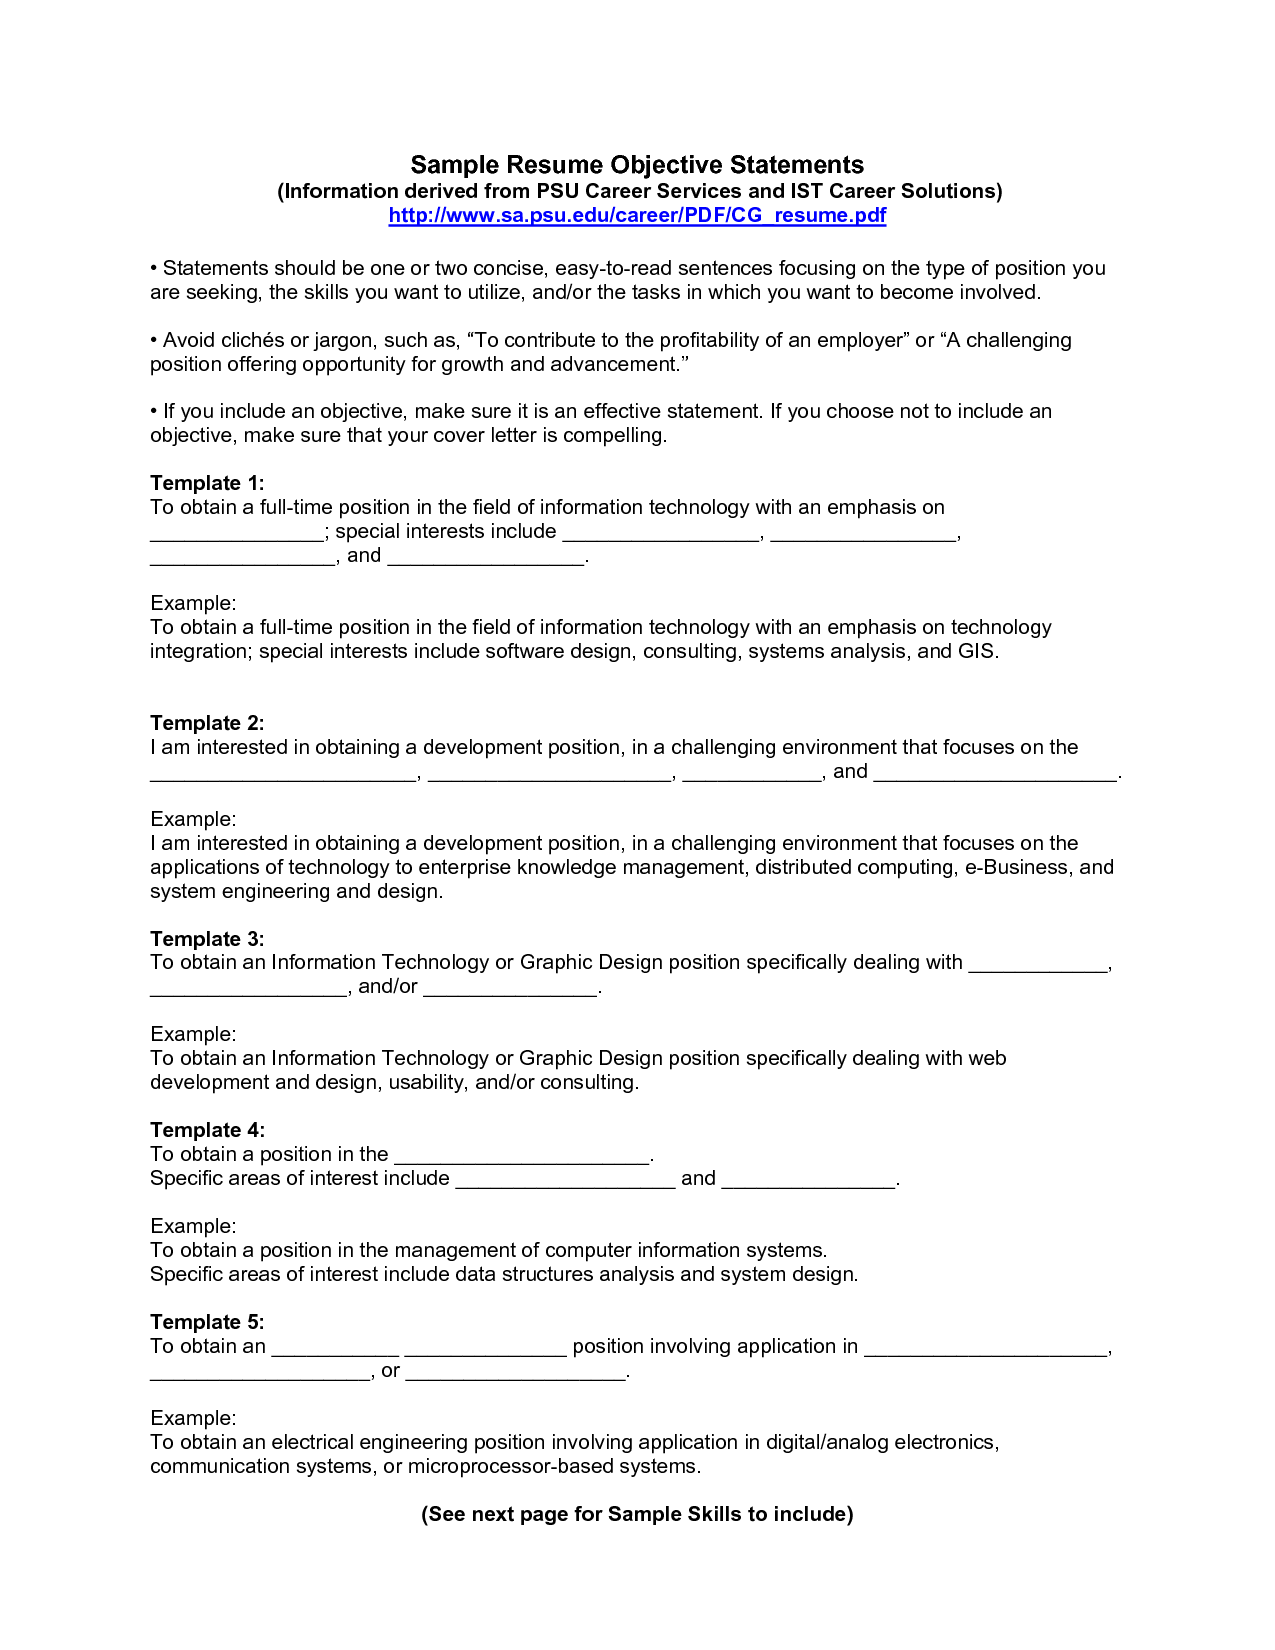 Resume Template Job Objective Examples Career Resumes Within For Resume  Examples Objective Samples Resume Objective Samples  What Is An Objective On A Resume